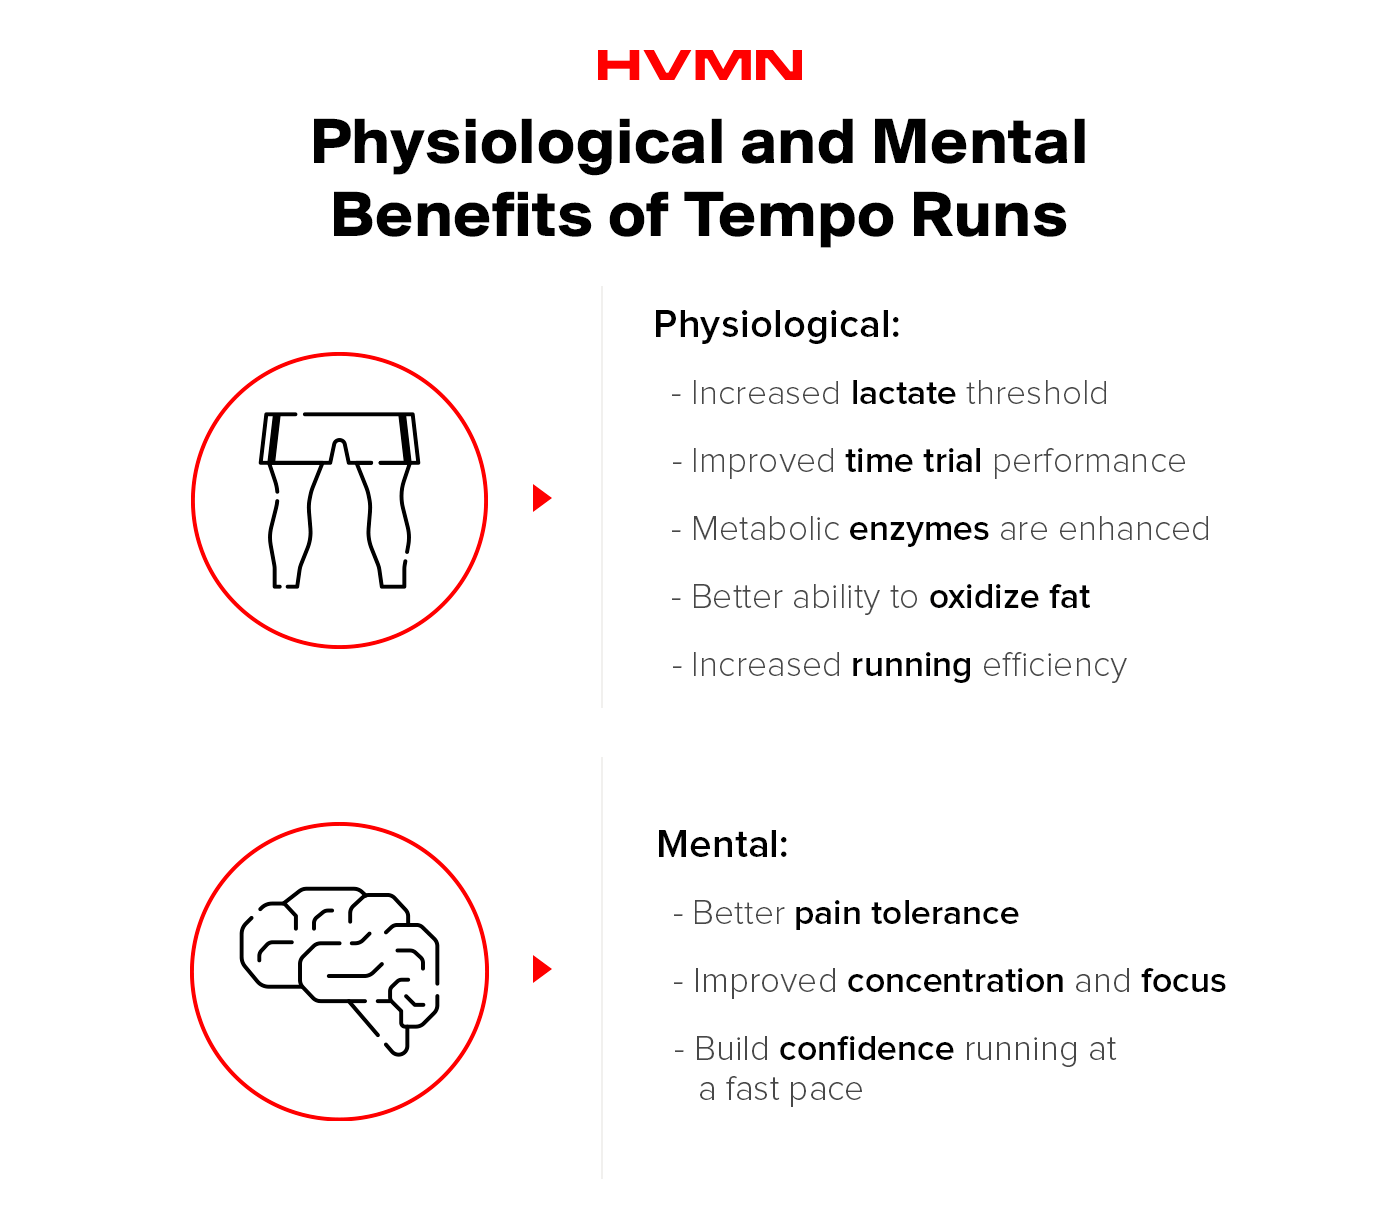 This image describes the physiological and mental benefits of a tempo run. The physiological benefits of tempo runs include increased lactate threshold, improve time trial performance, enhanced metabolic enzymes, a better ability to oxidize fat, and increased running efficiency. The mental benefits include better pain tolerance, improved concentration and focus, and building confidence running at a fast pace.